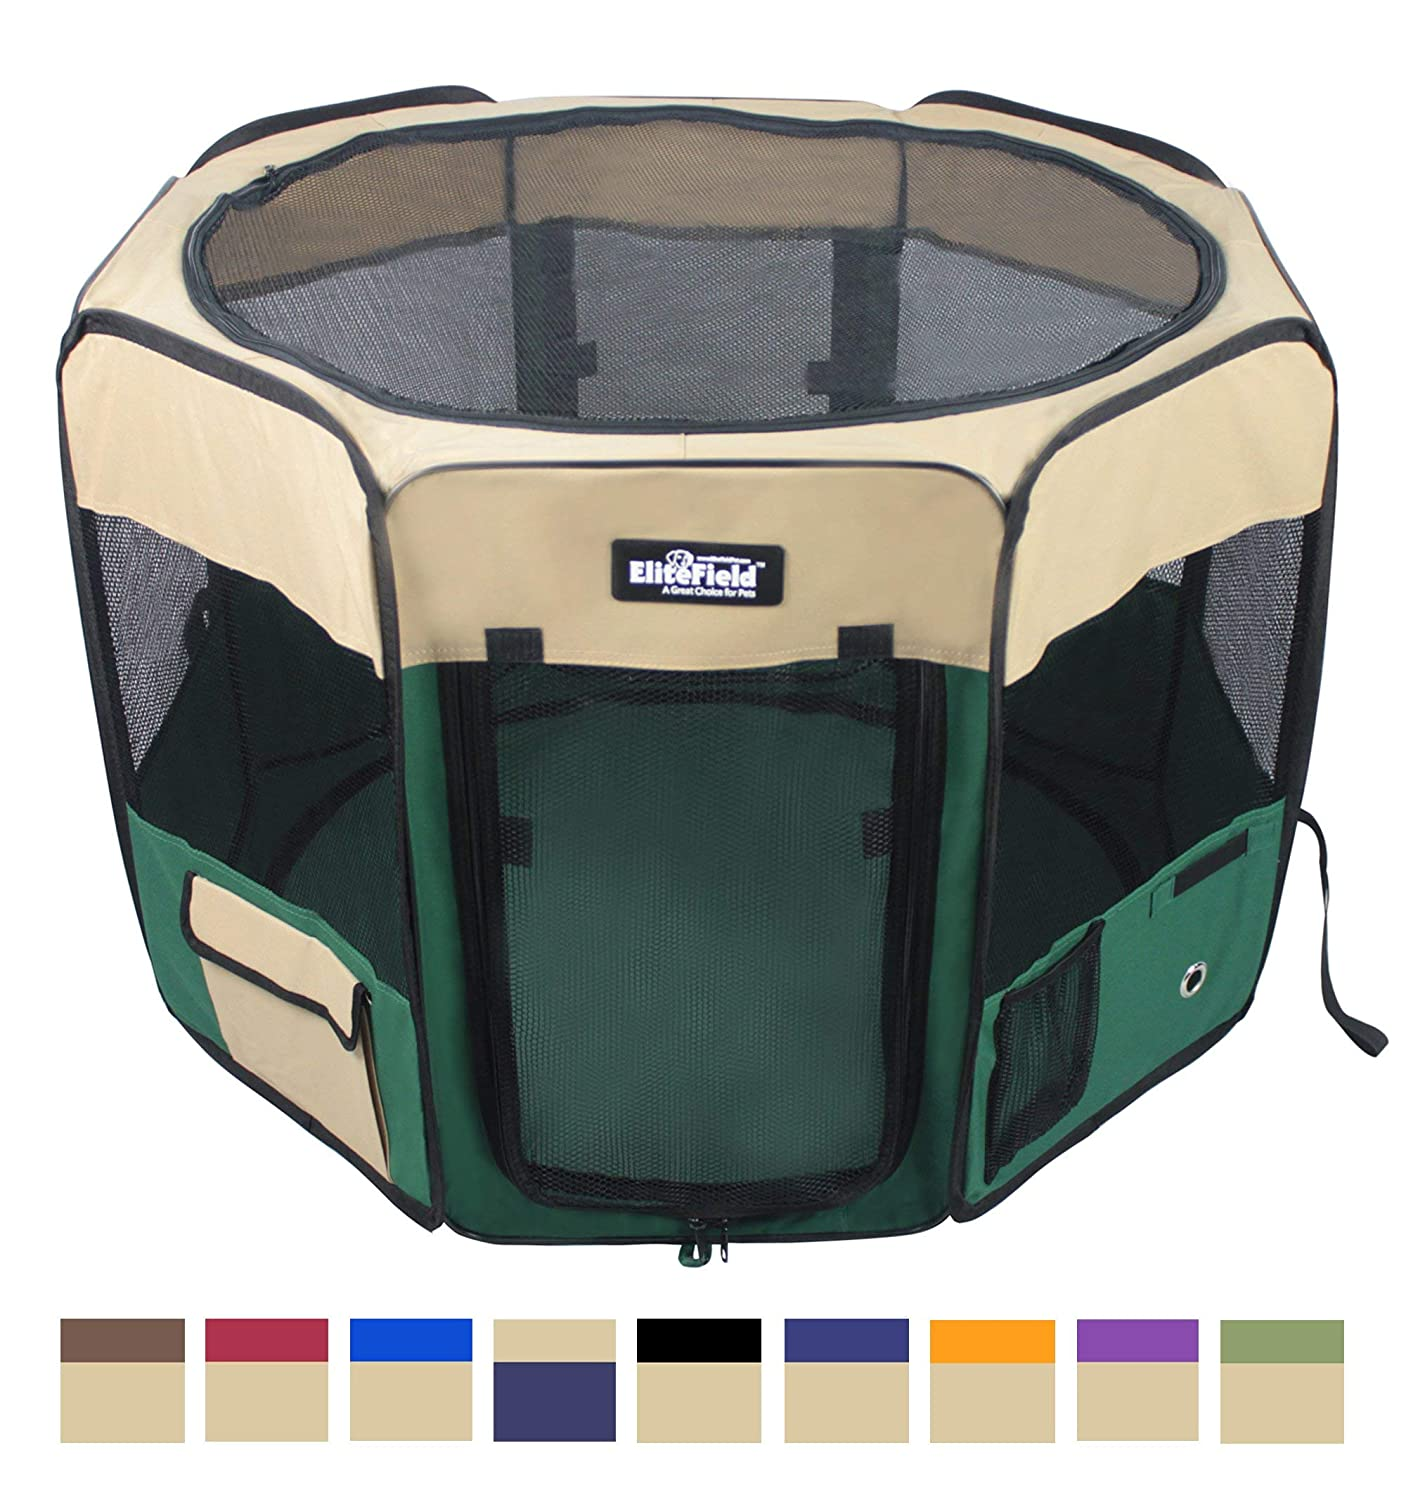 Beige+Green 36  x 36  x 24 HEliteField 2Door Soft Pet Playpen, Exercise Pen, Multiple Sizes and colors Available for Dogs, Cats and Other Pets (52  x 52  x 32 H, Brown+Beige)